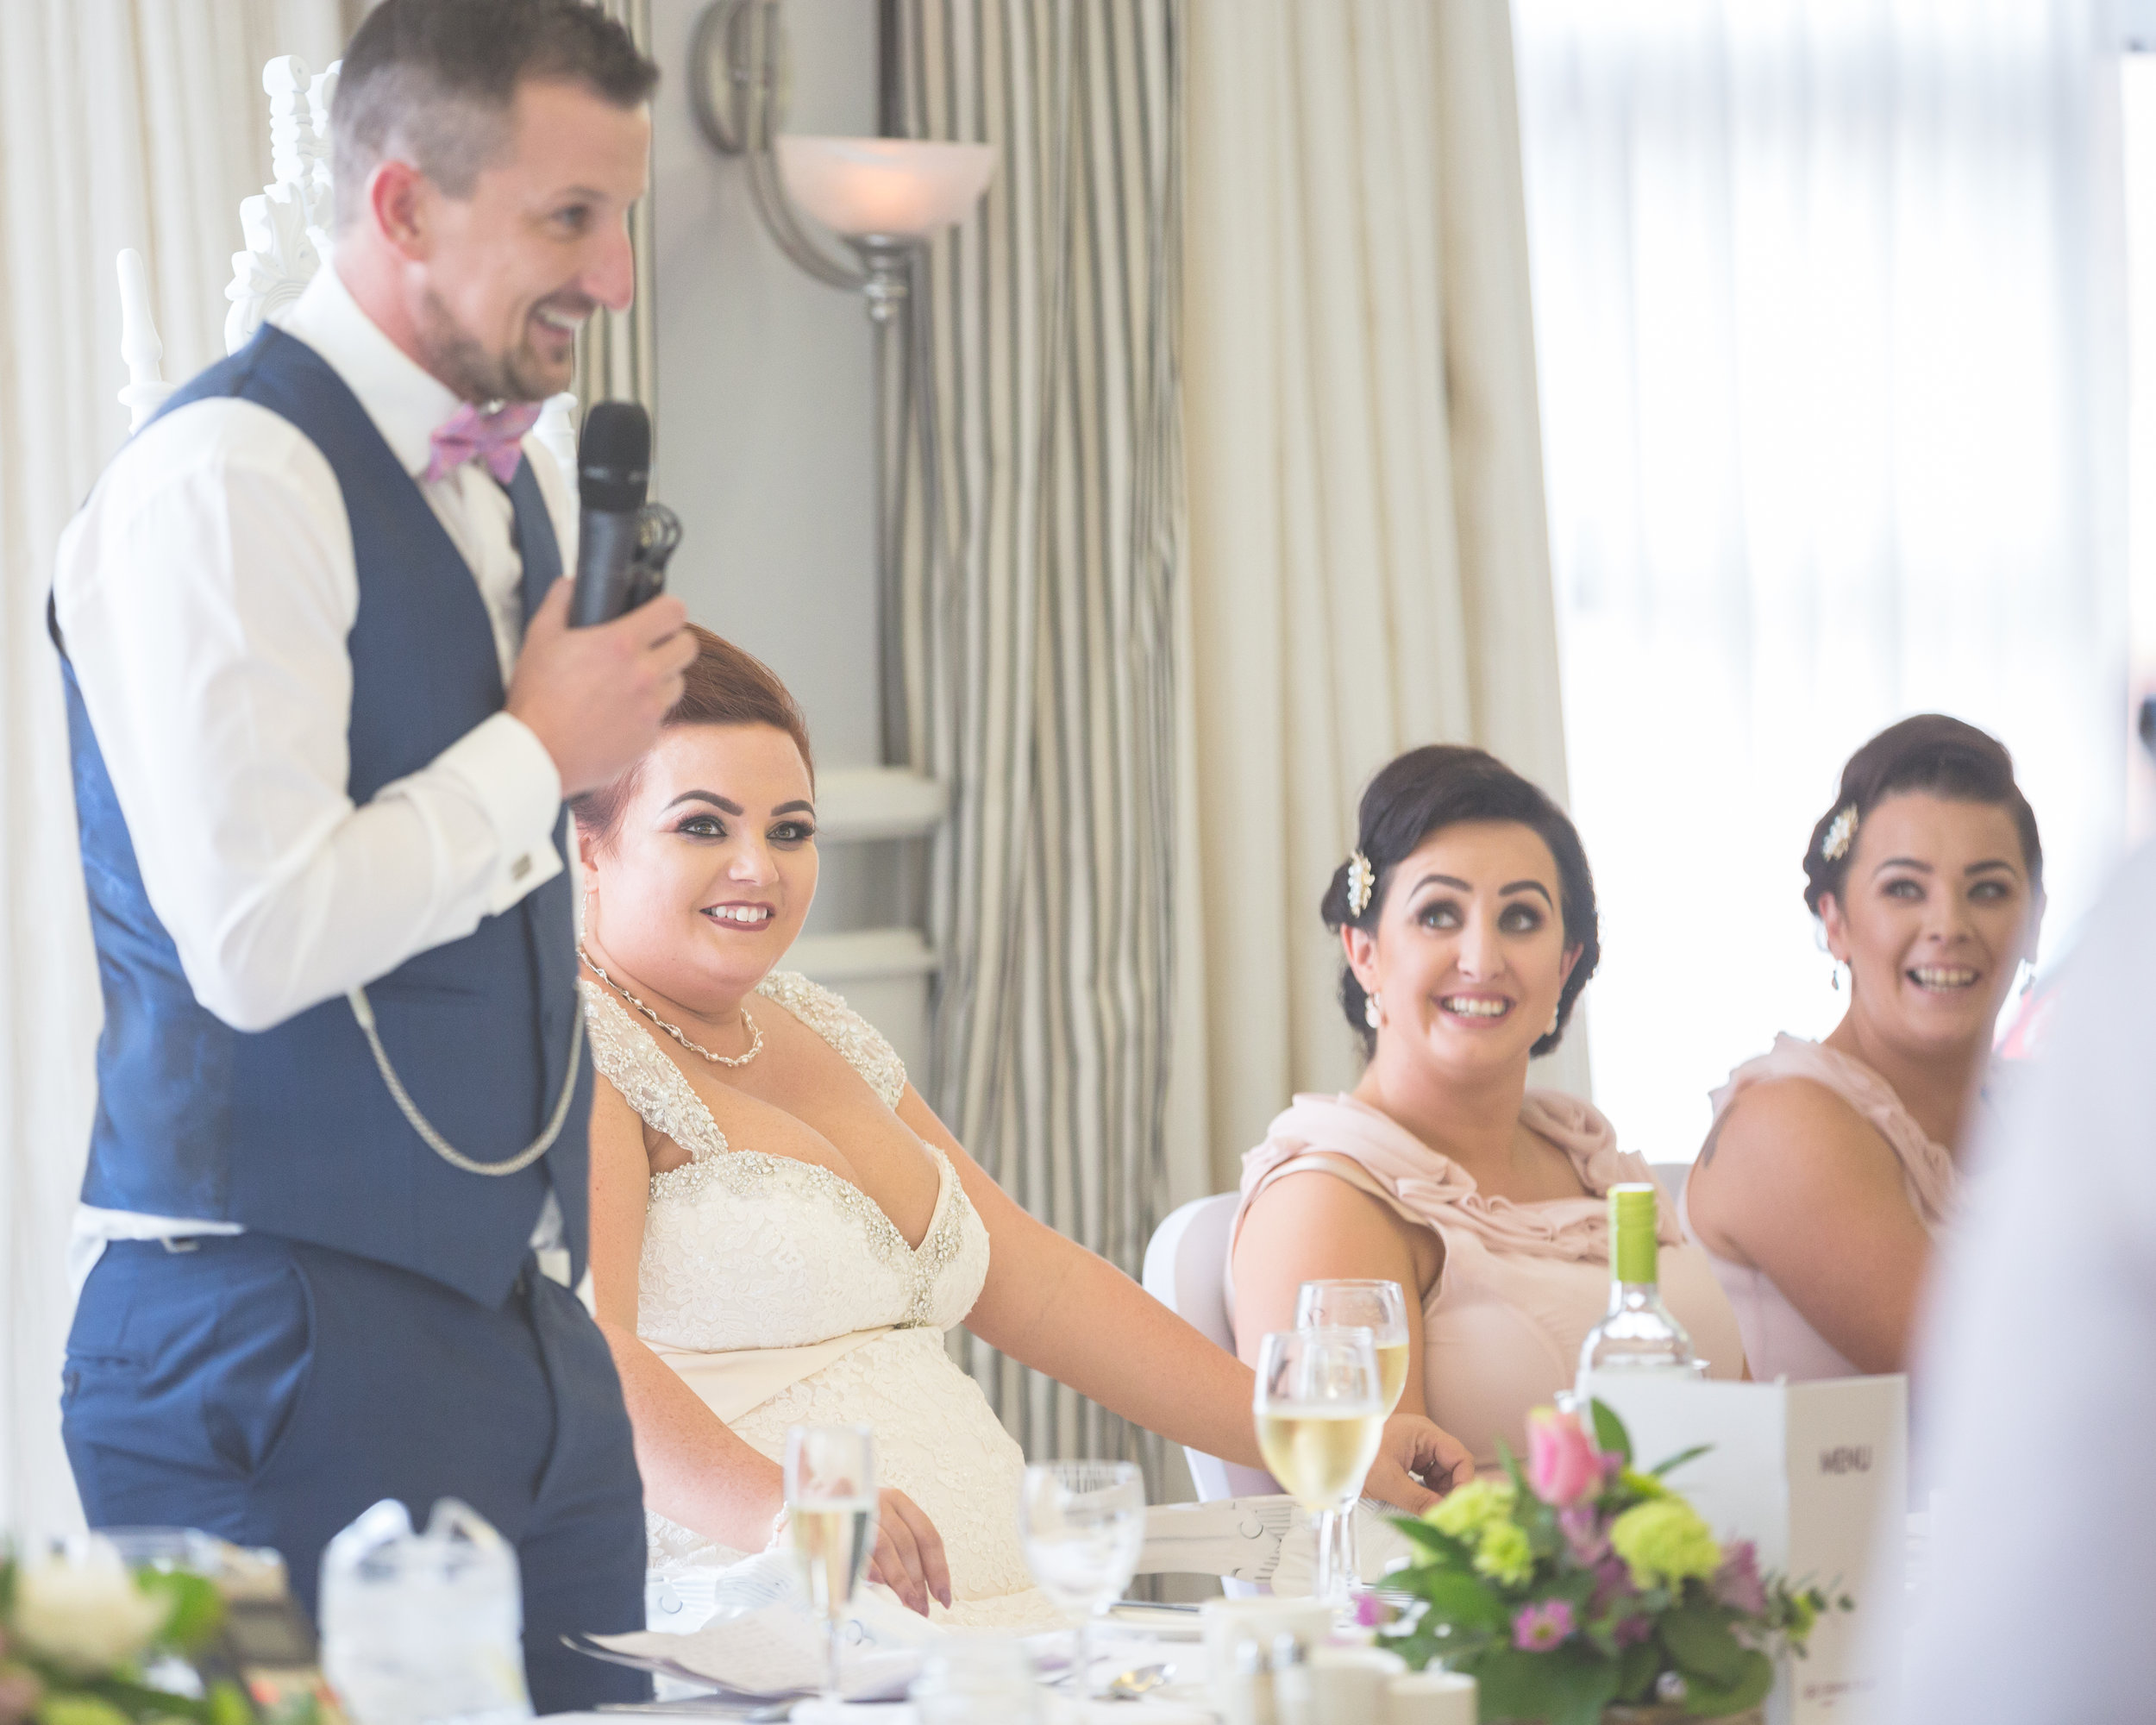 Antoinette & Stephen - Speeches | Brian McEwan Photography | Wedding Photographer Northern Ireland 61.jpg